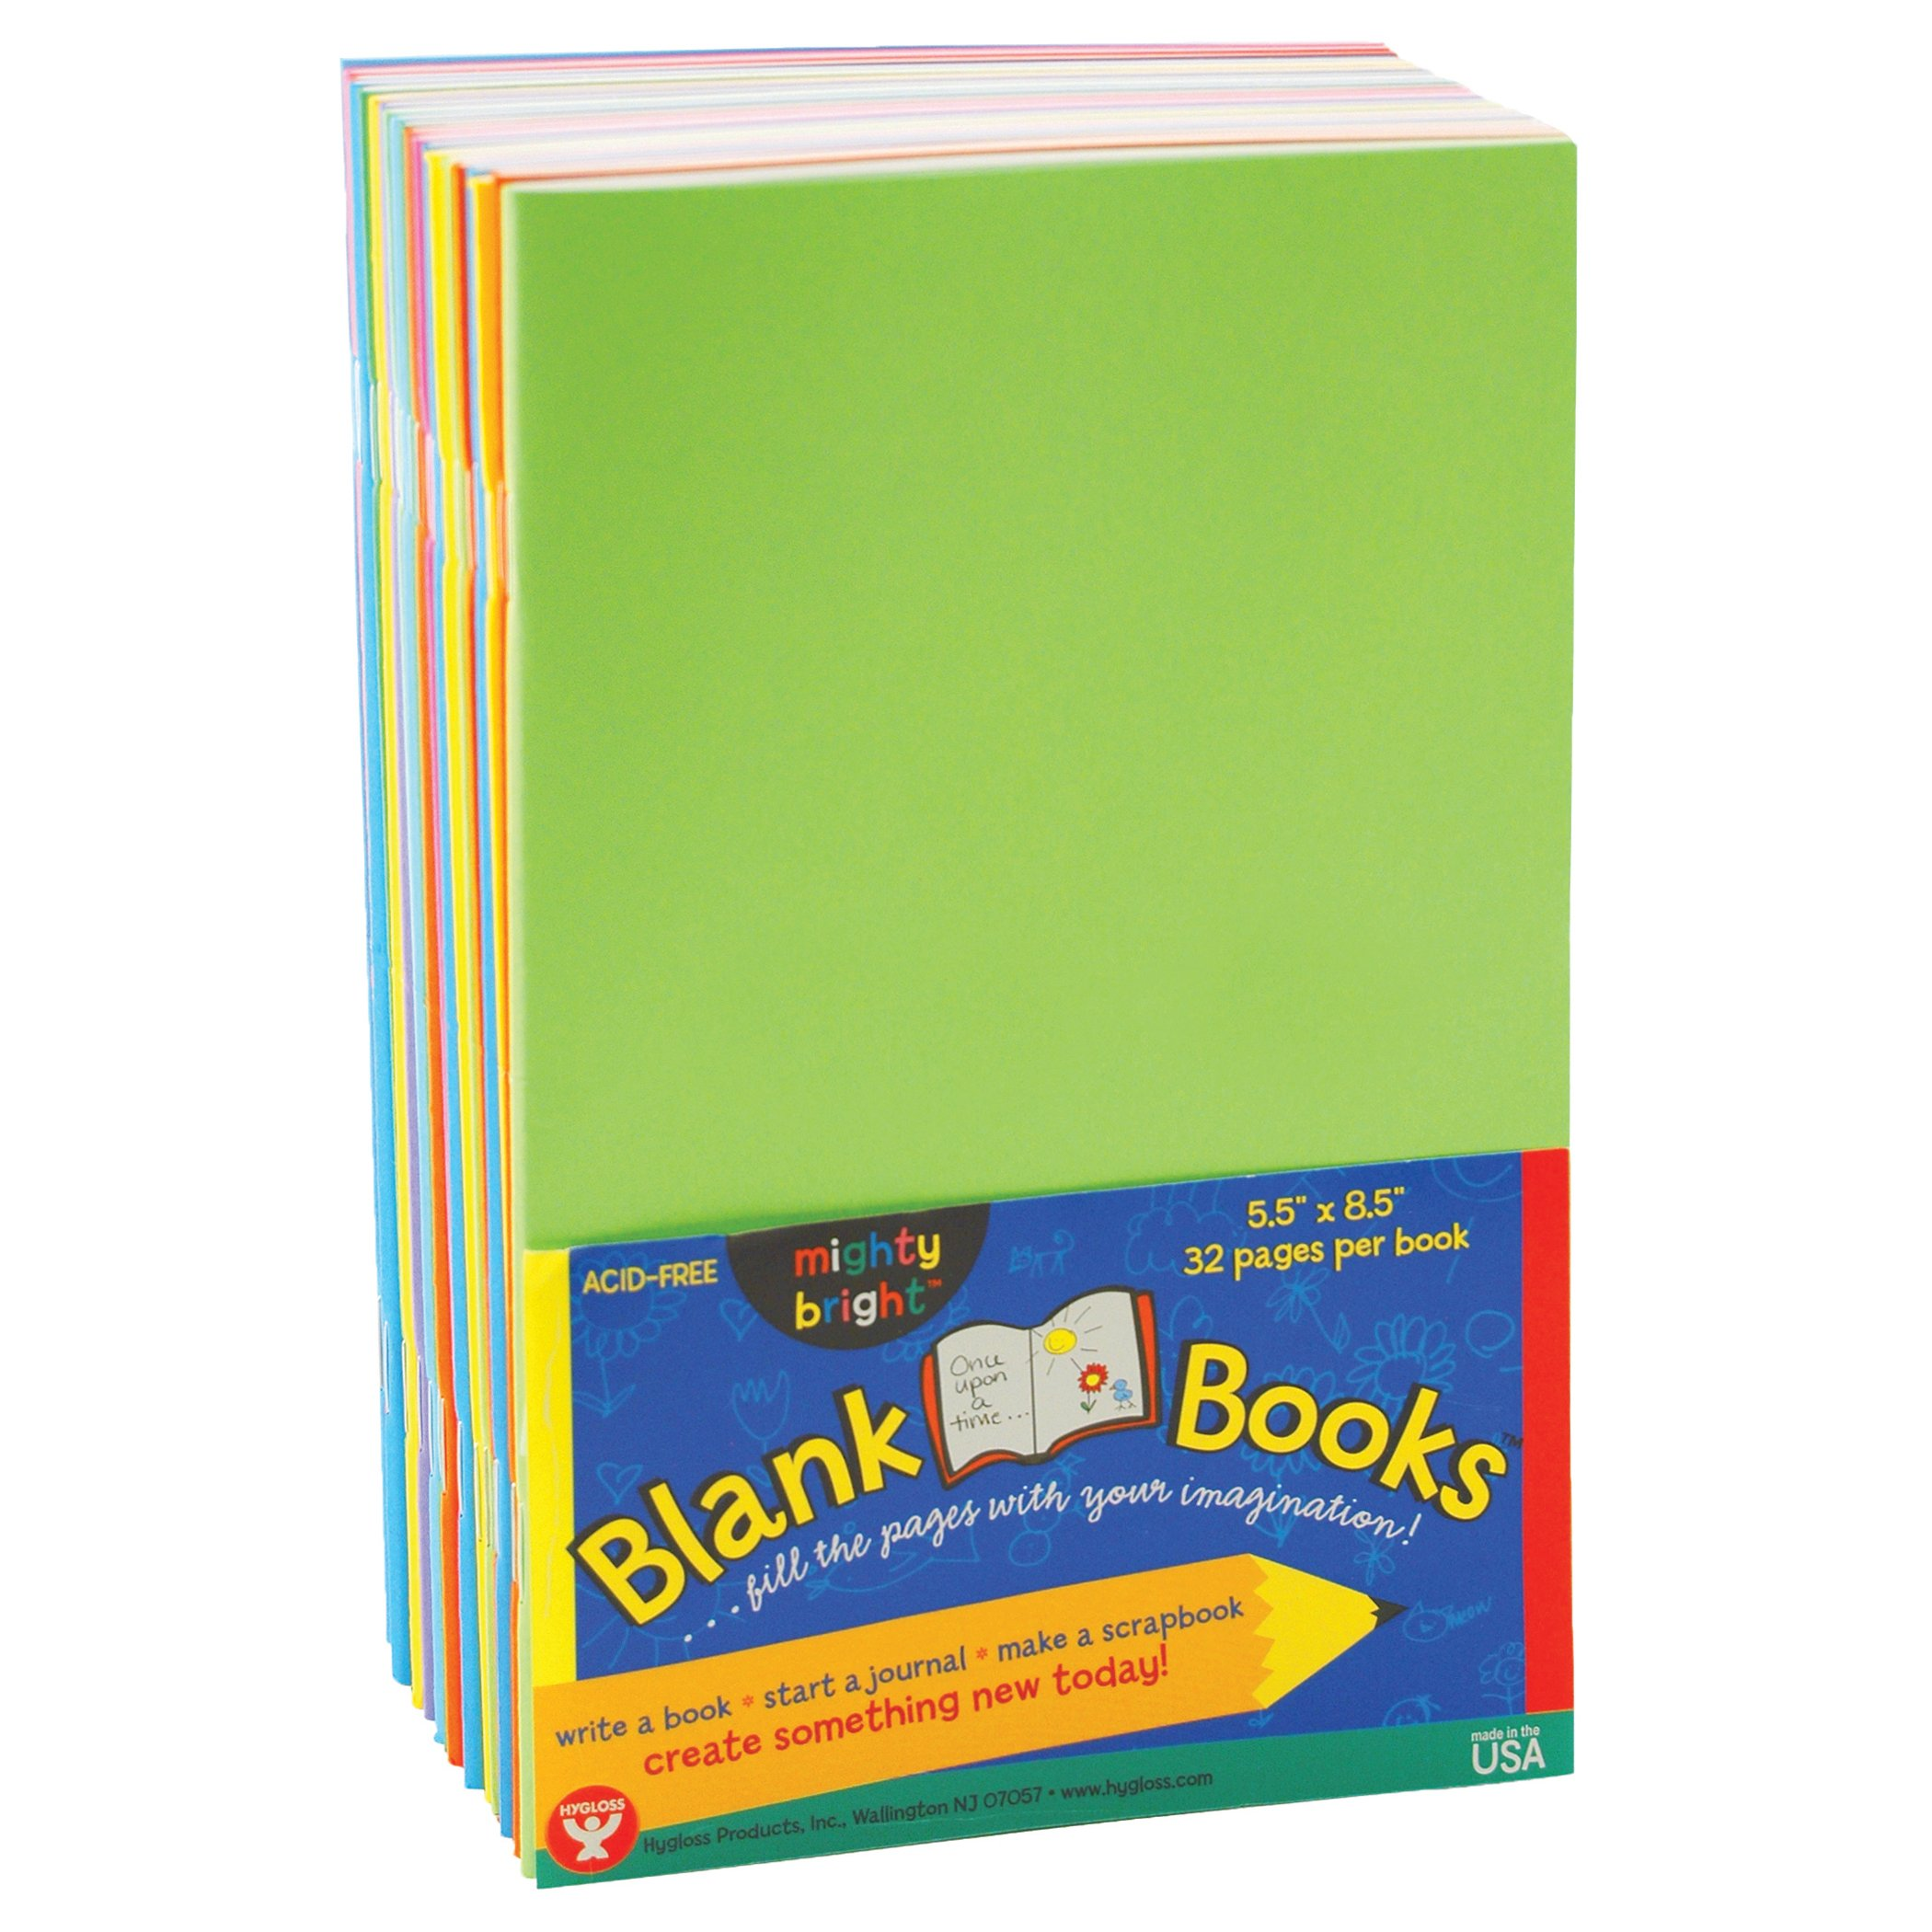 Hygloss Products HYG77705BN Mighty Brights Books 32 PG 5 1/2X8 1/2 10 Bk, Grade 4:'' Height, 5'' Wide, 8.5'' Length, Assorted Colors (Pack of 20)